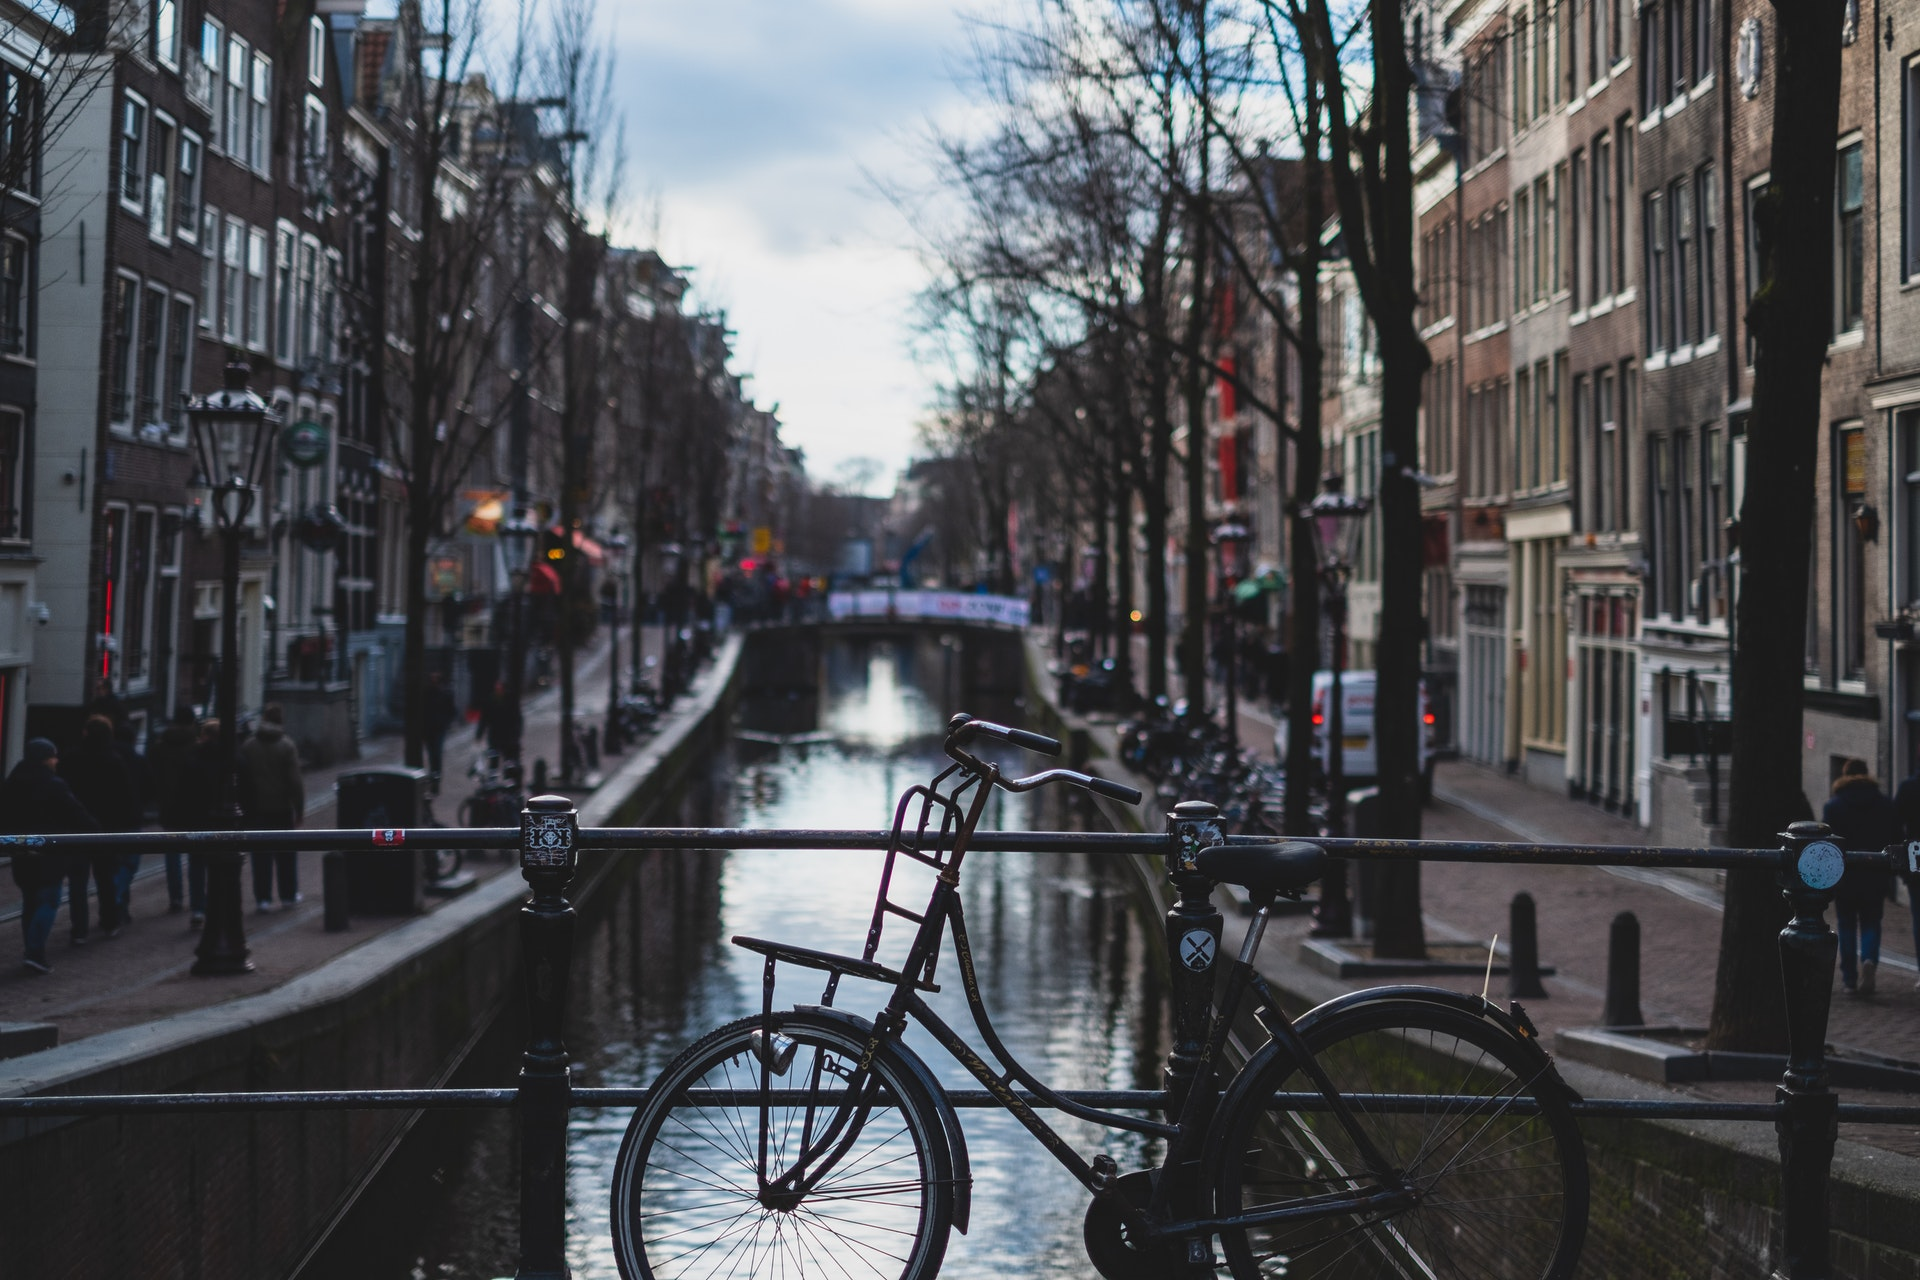 Amsterdam: 4 Quick Tips For Your Visit